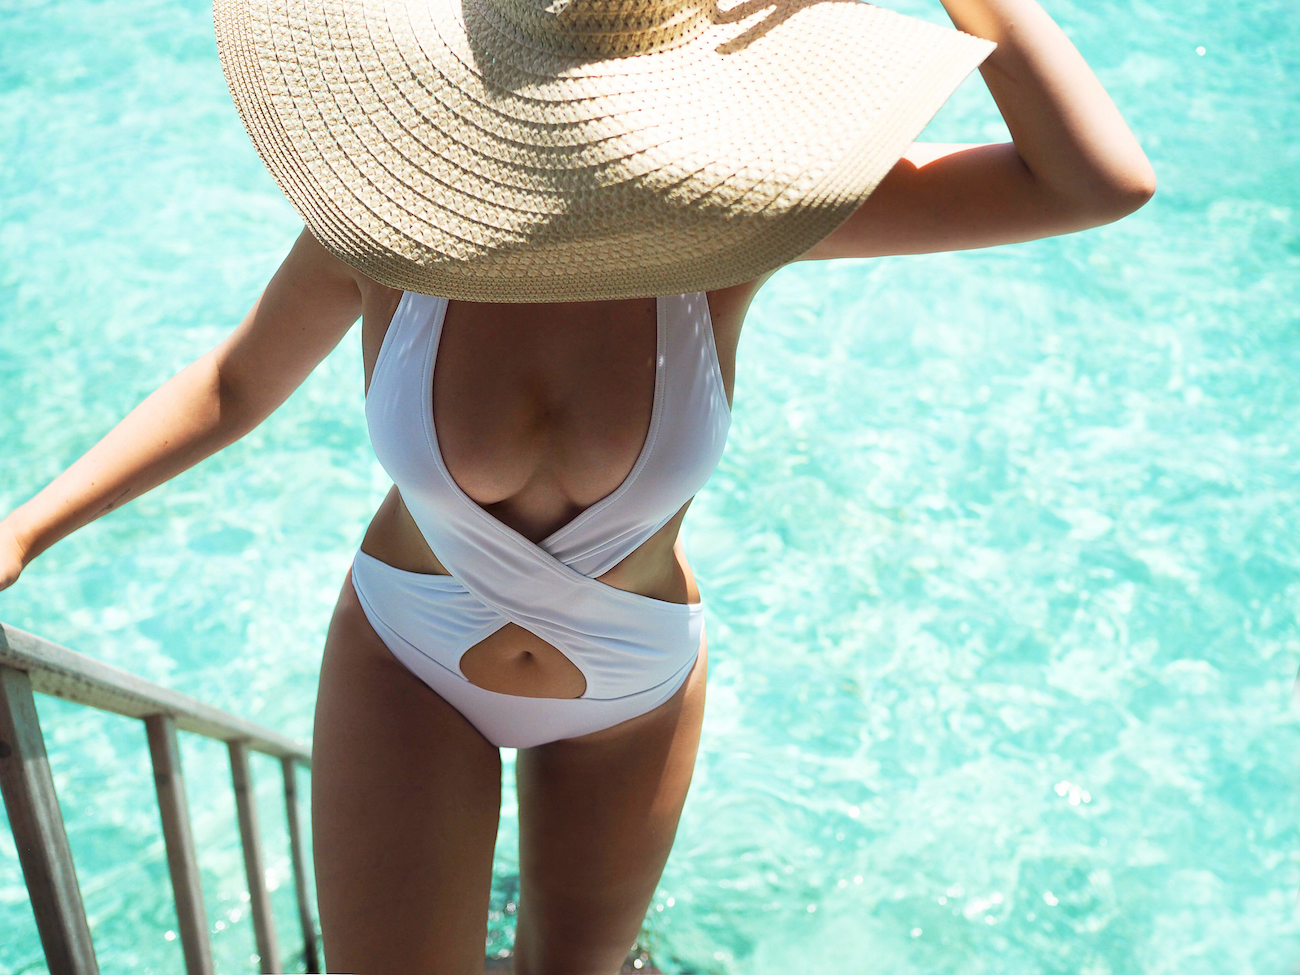 travel blogger blog lama resort maldives bathing suit asks white raffaelo hat